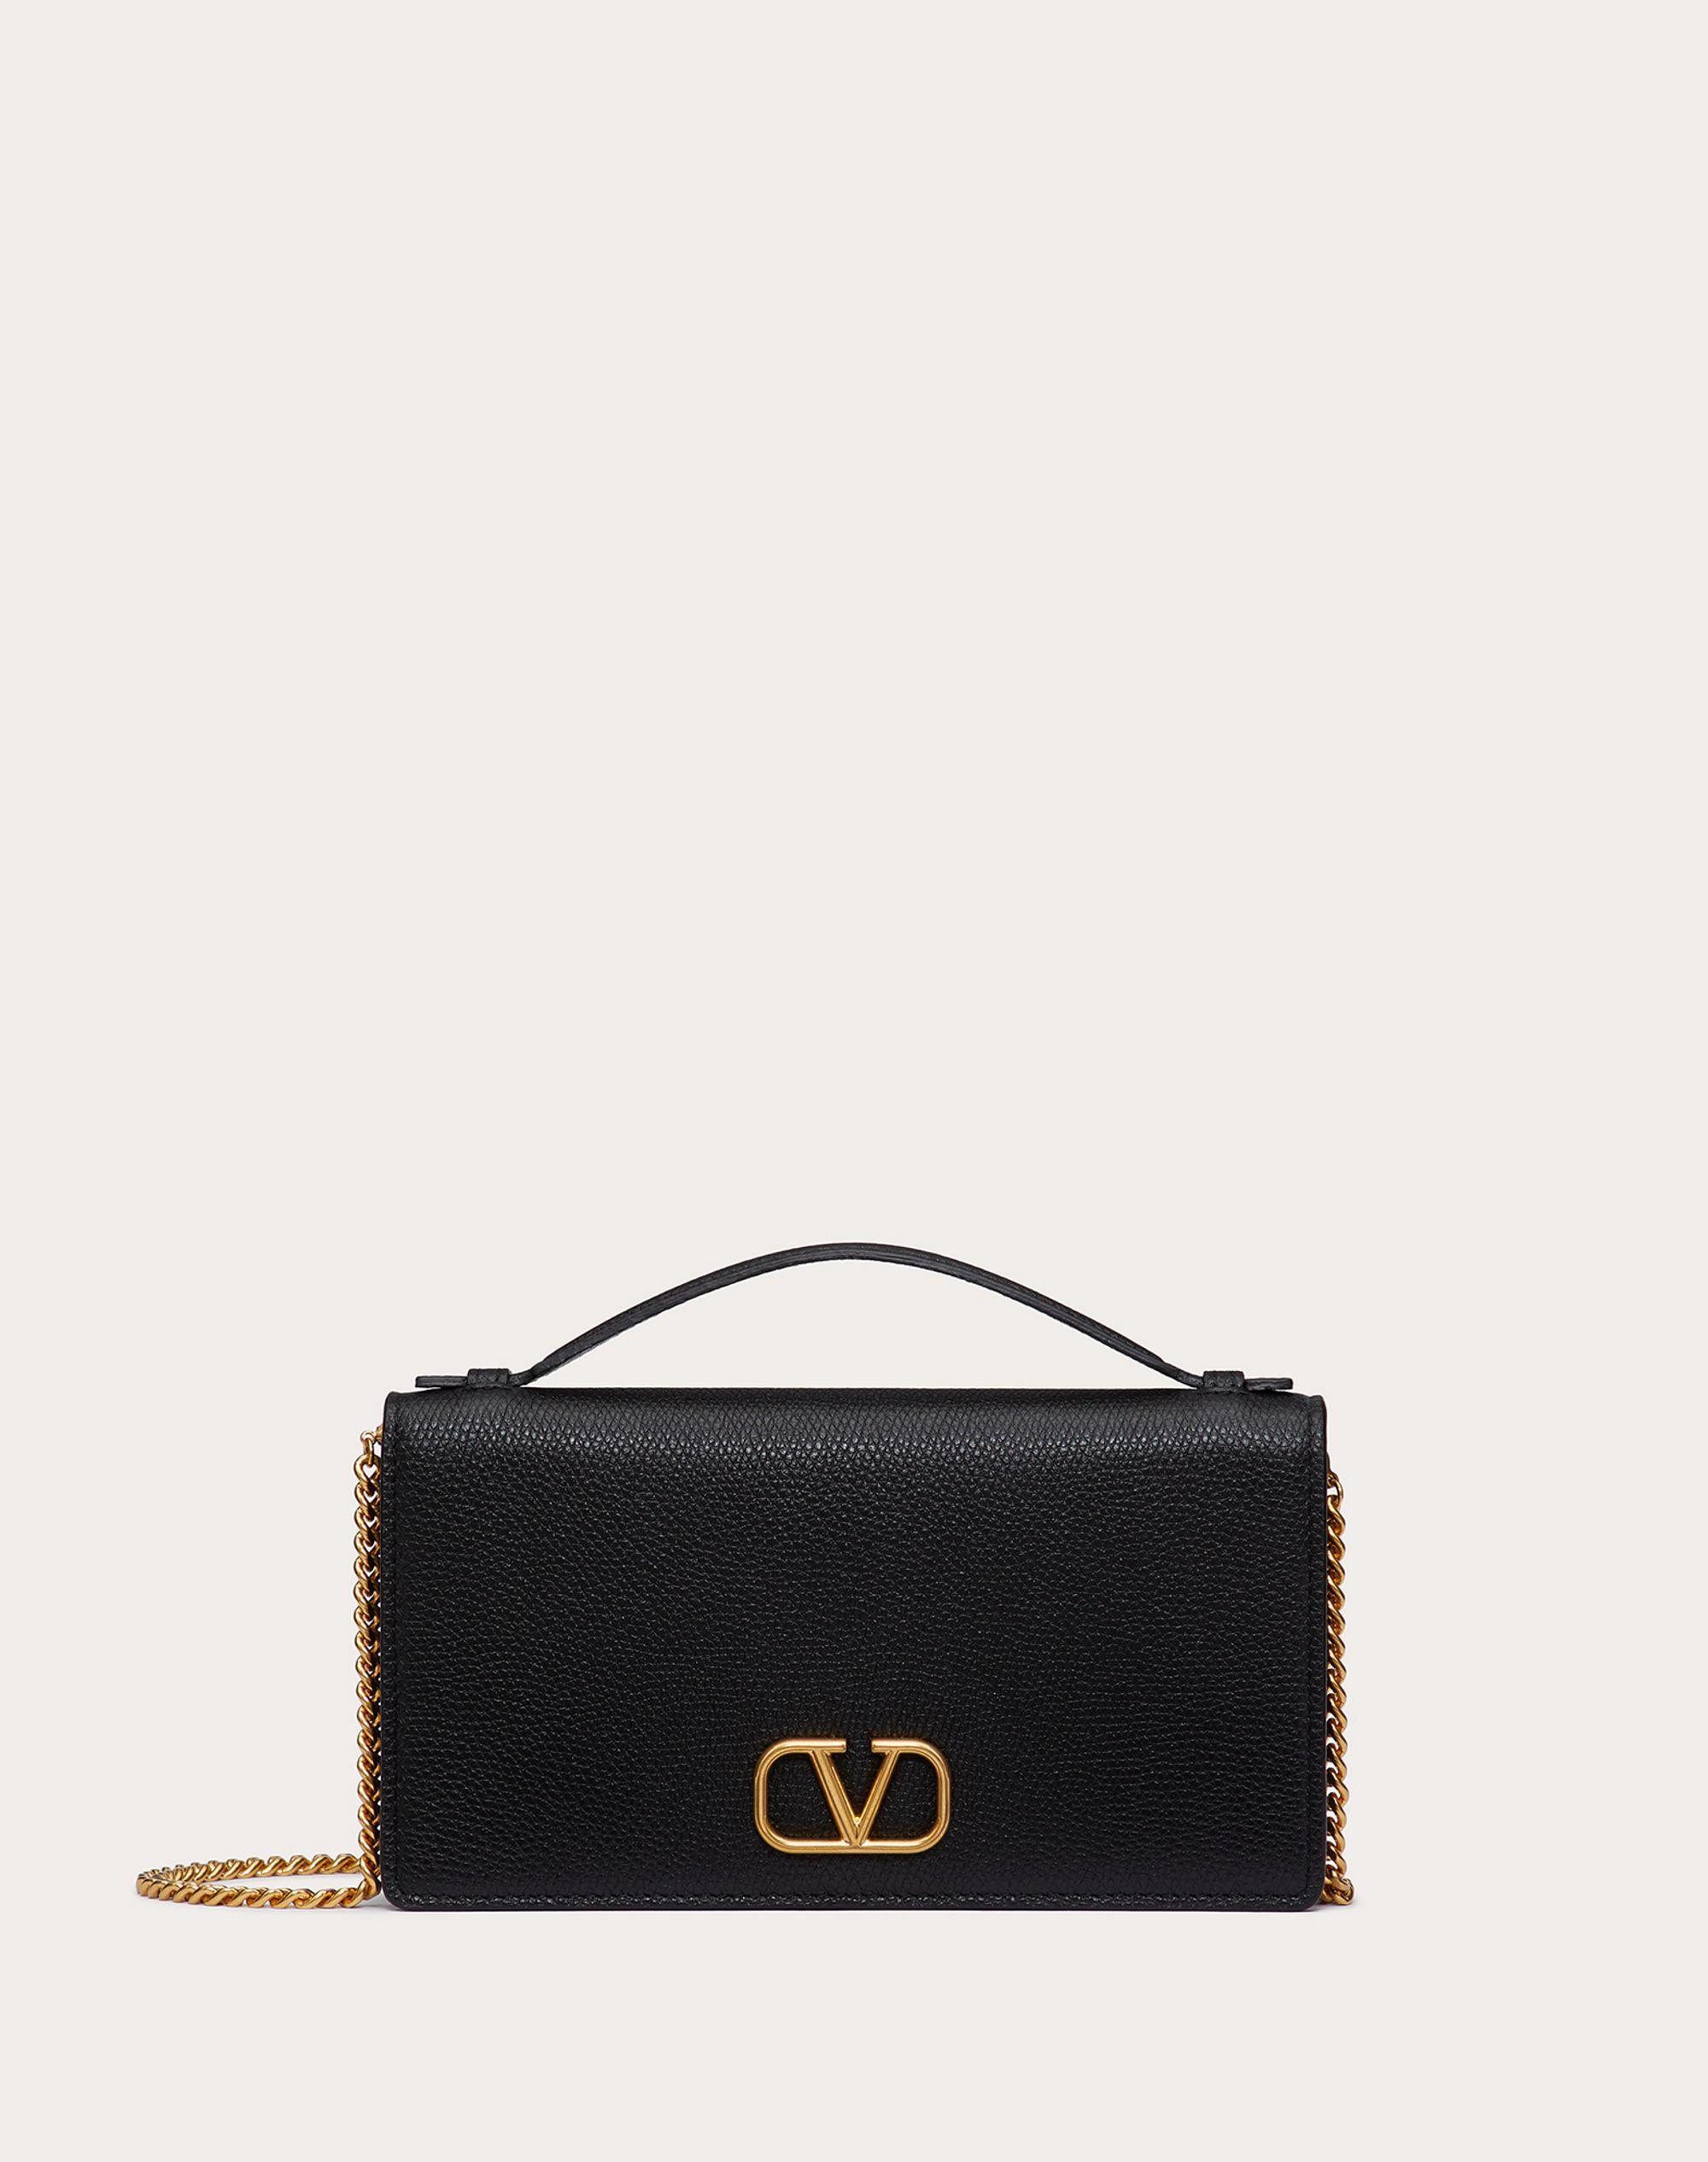 VLOGO SIGNATURE GRAINY CALFSKIN WALLET WITH CHAIN